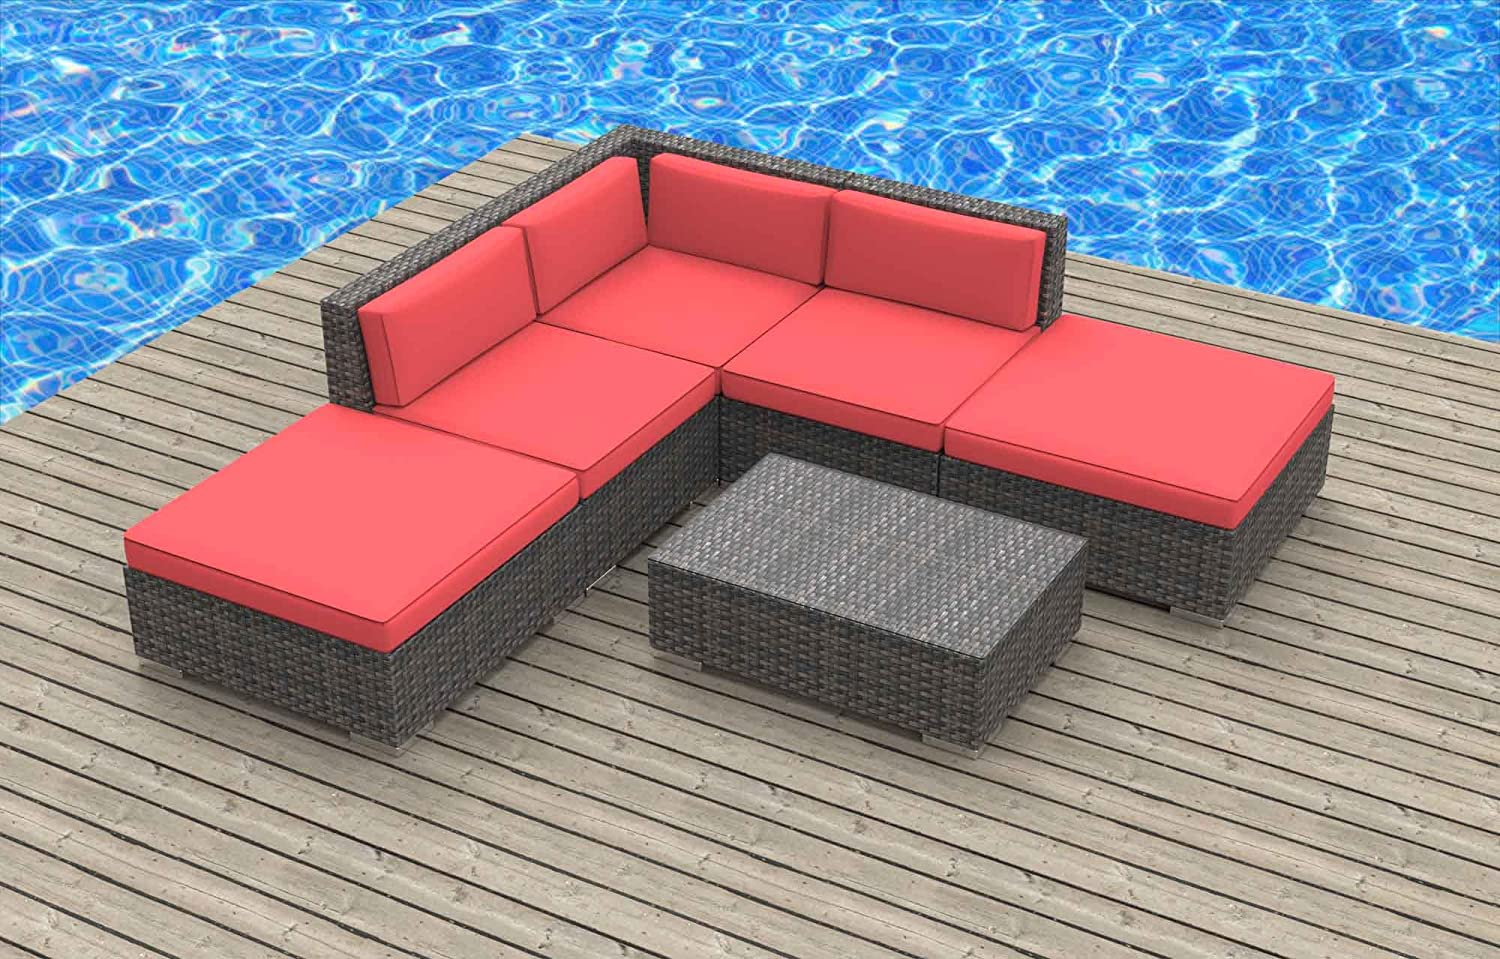 www.urbanfurnishing.net Urban Furnishing - BALI 6pc Modern Outdoor Backyard Wicker Rattan Patio Furniture Sofa Sectional Couch Set - Coral Red at Sears.com